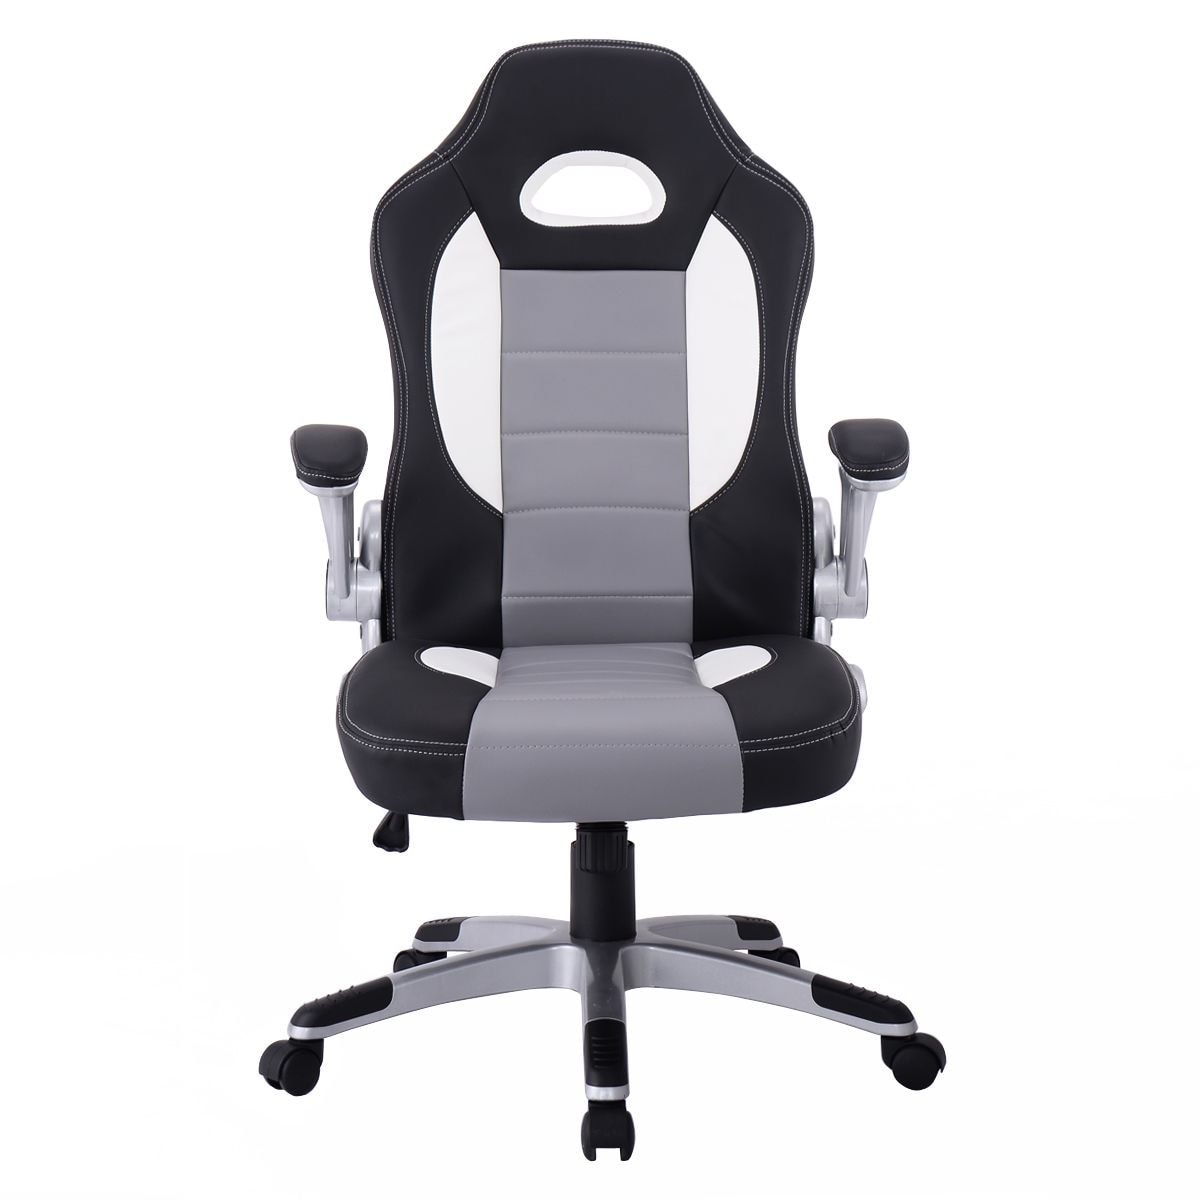 Shop Costway PU Leather Executive Racing Style Bucket Seat Chair Sporty Office  Desk Chair   Free Shipping Today   Overstock.com   16339803